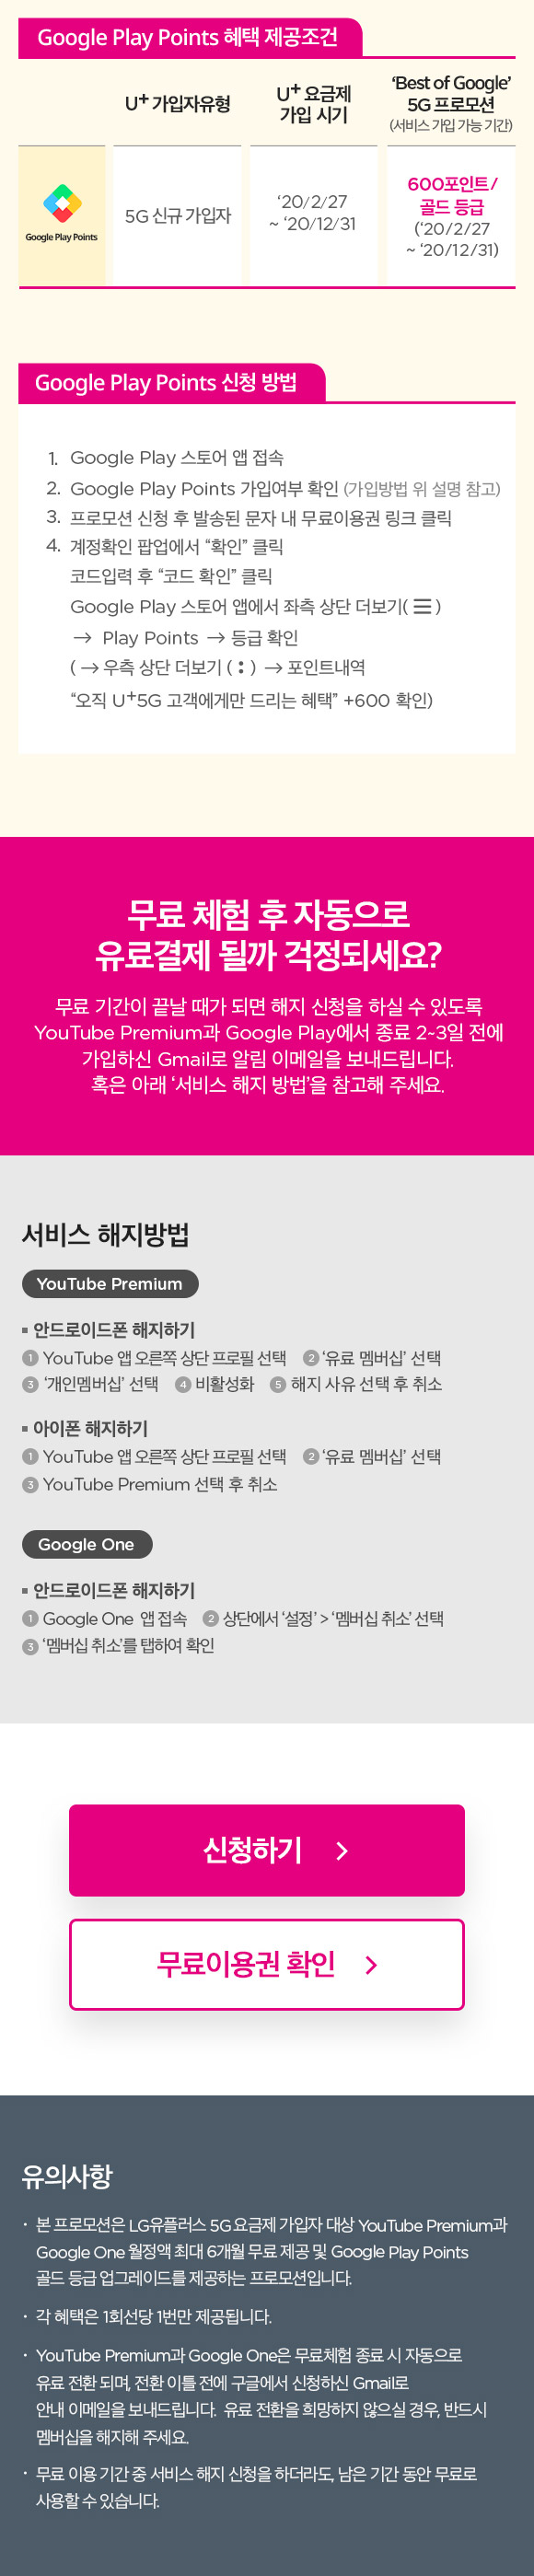 Best of Google 5G 프로모션